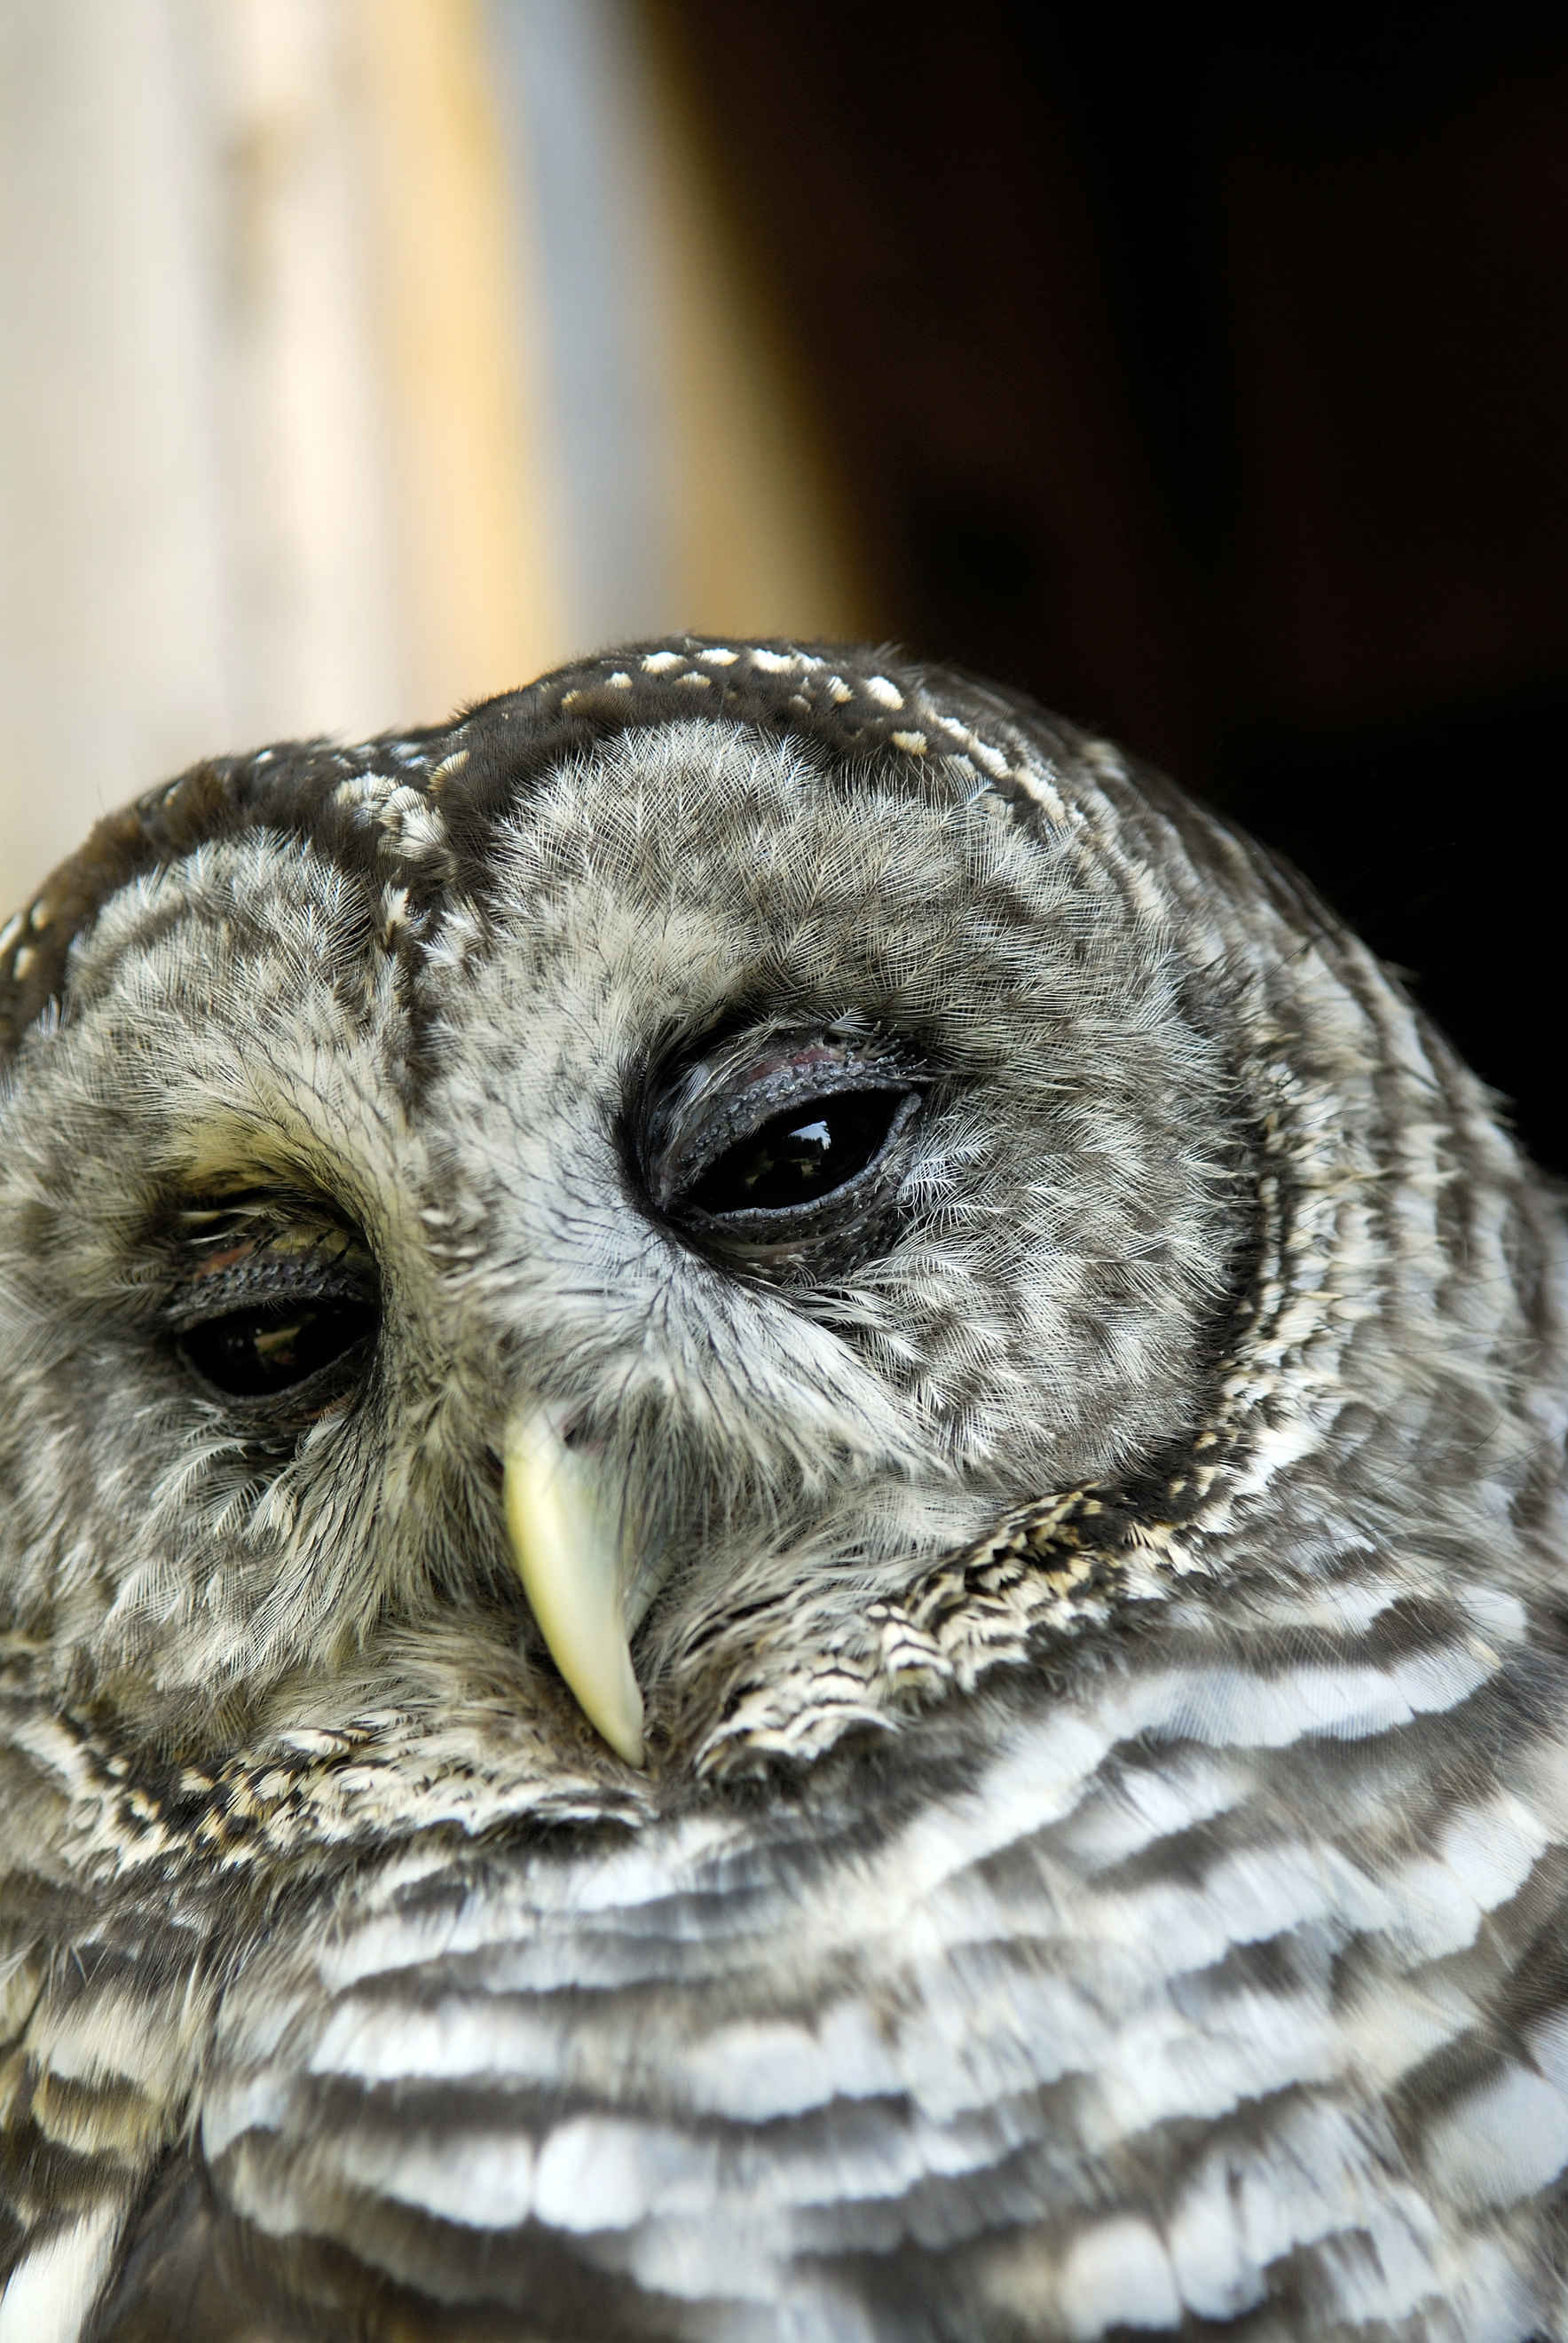 Whoooo is Oberon the Owl? An event for the whole family with NorthWoods Stewardship Center's Feathered Friend image